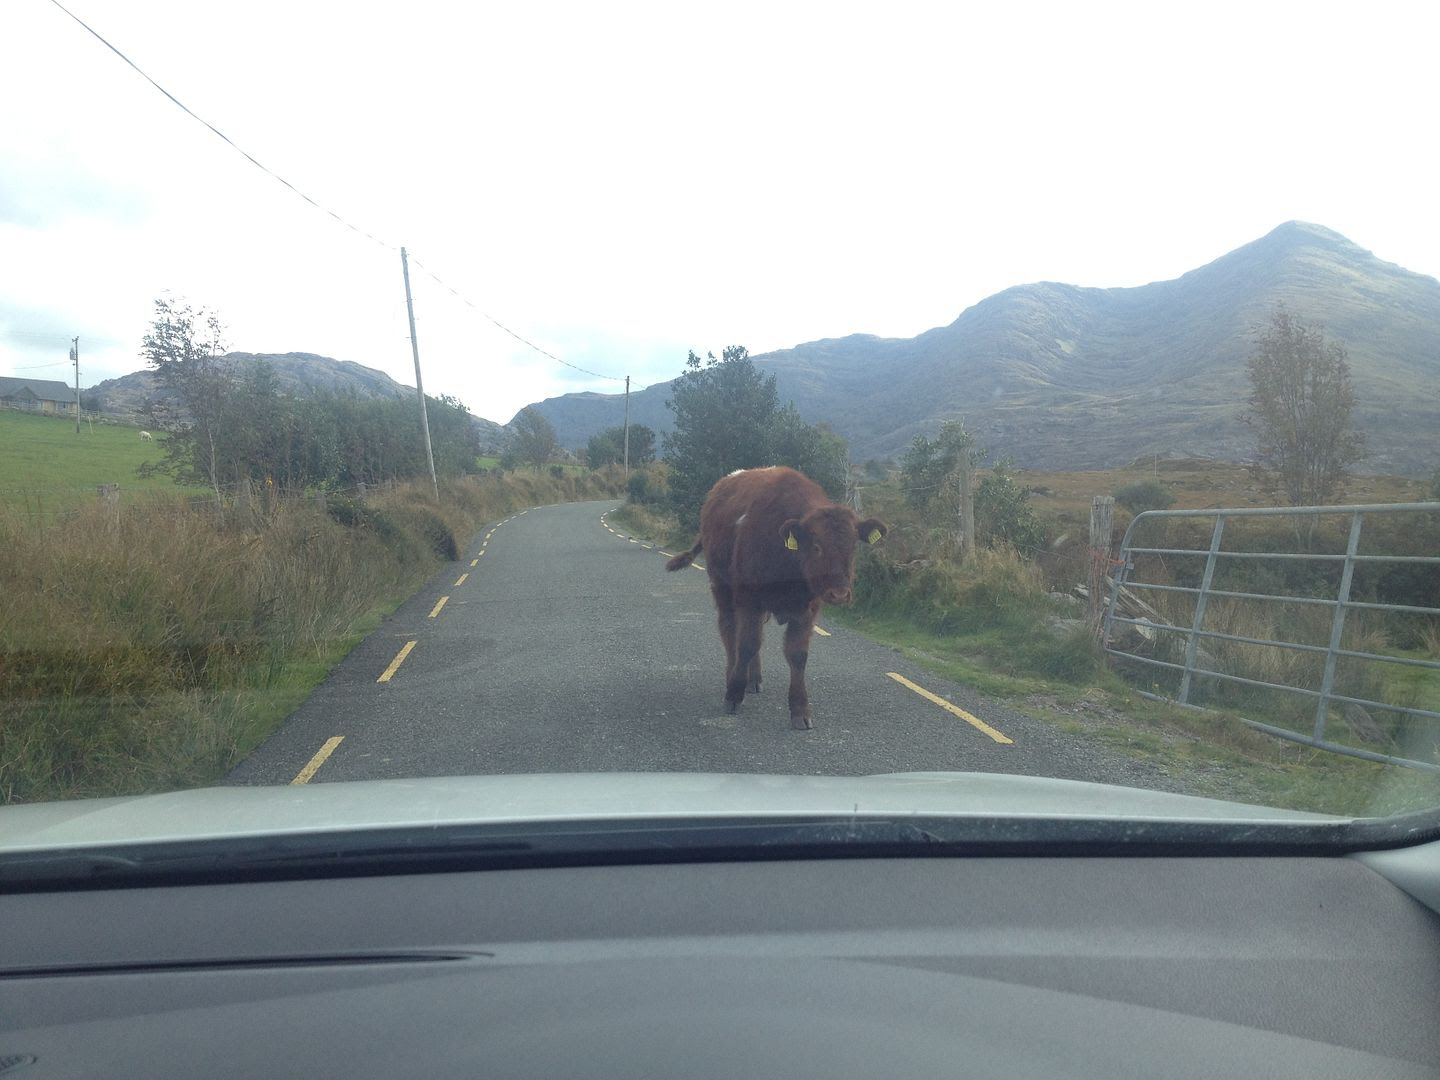 County Kerry, Ireland photo 2015-10-14 14.26.20_zpsobvqehlx.jpg